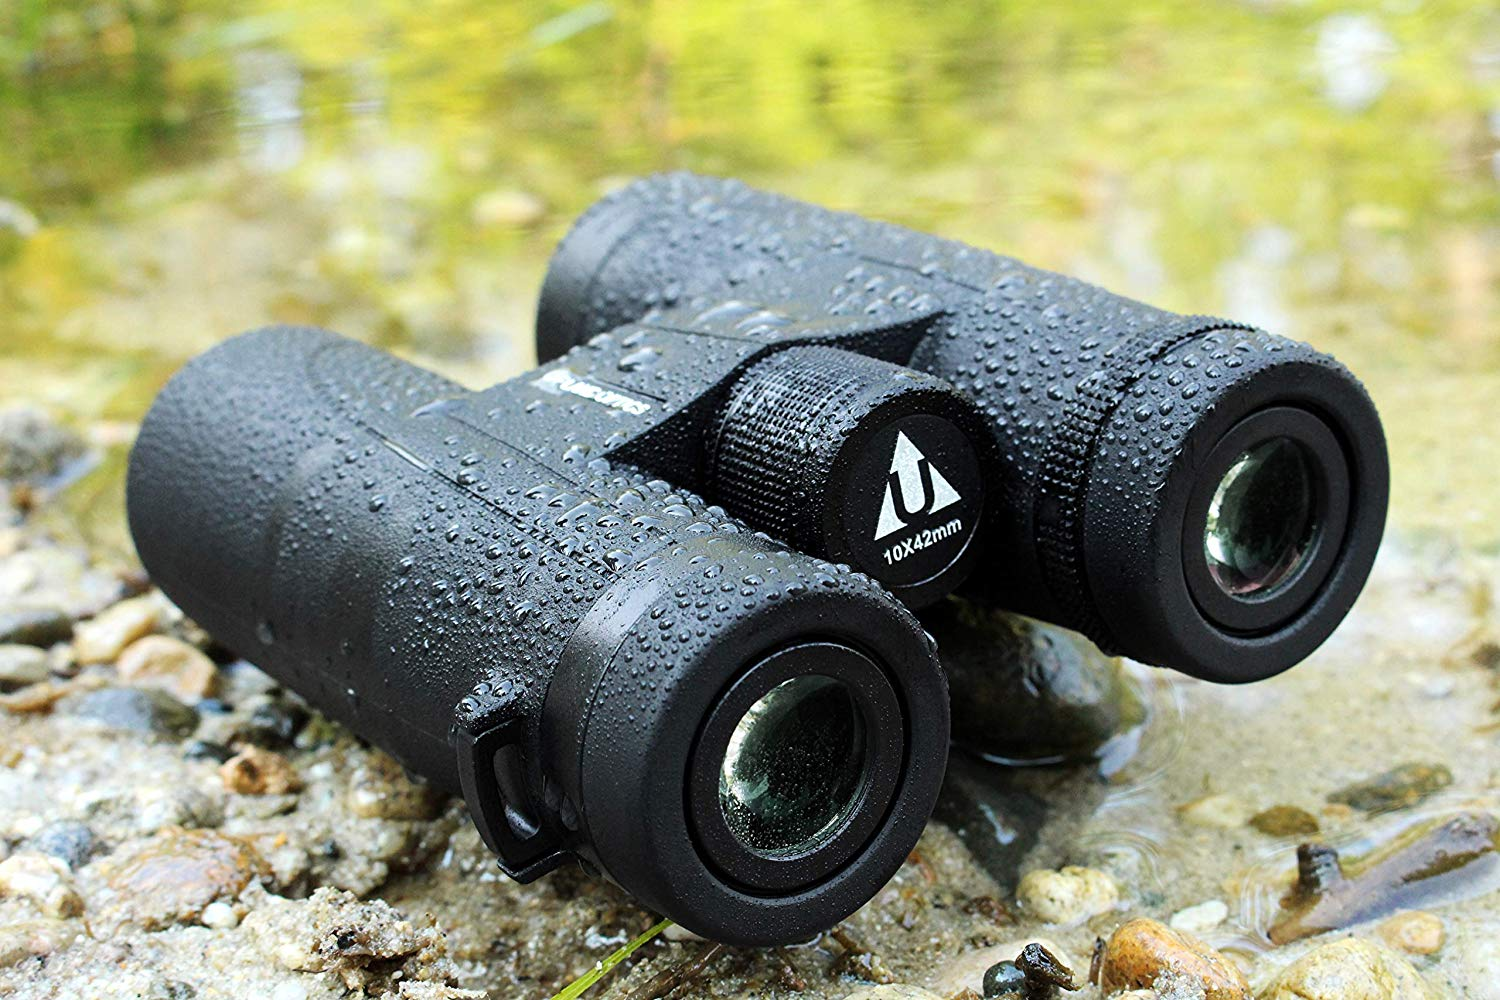 Upland best value binoculars for hunting-reviews